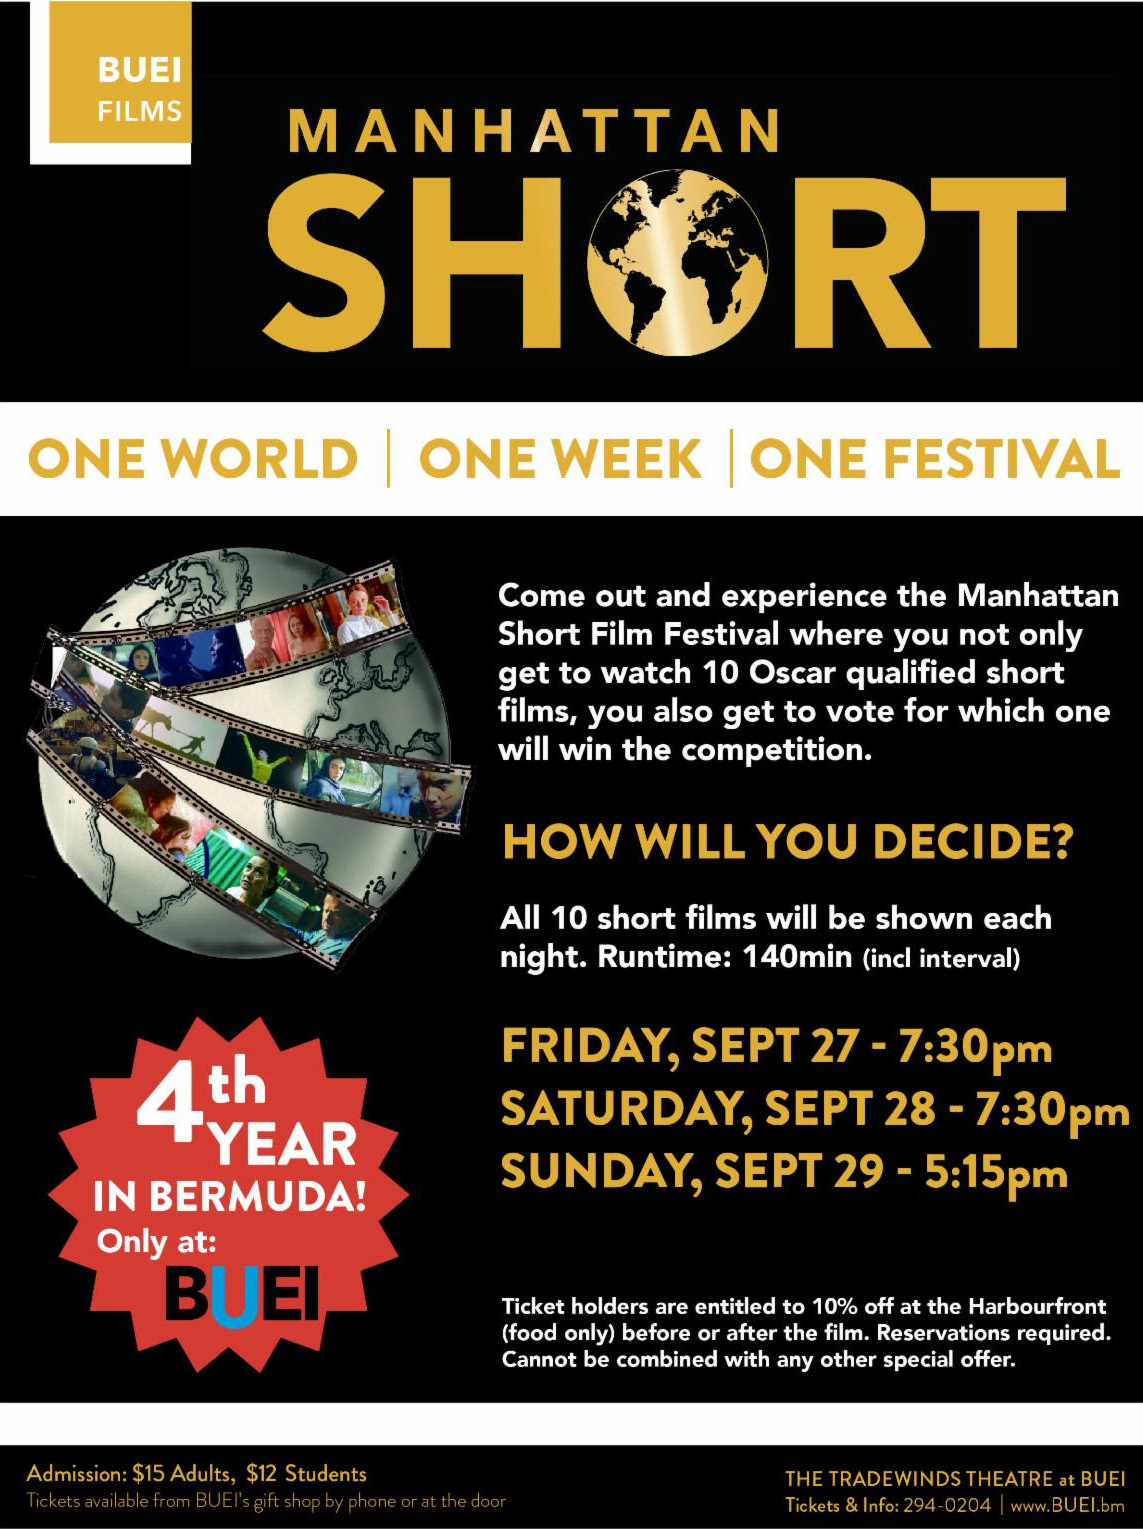 Manhattan Short Film Festival Bermuda Sept 2019